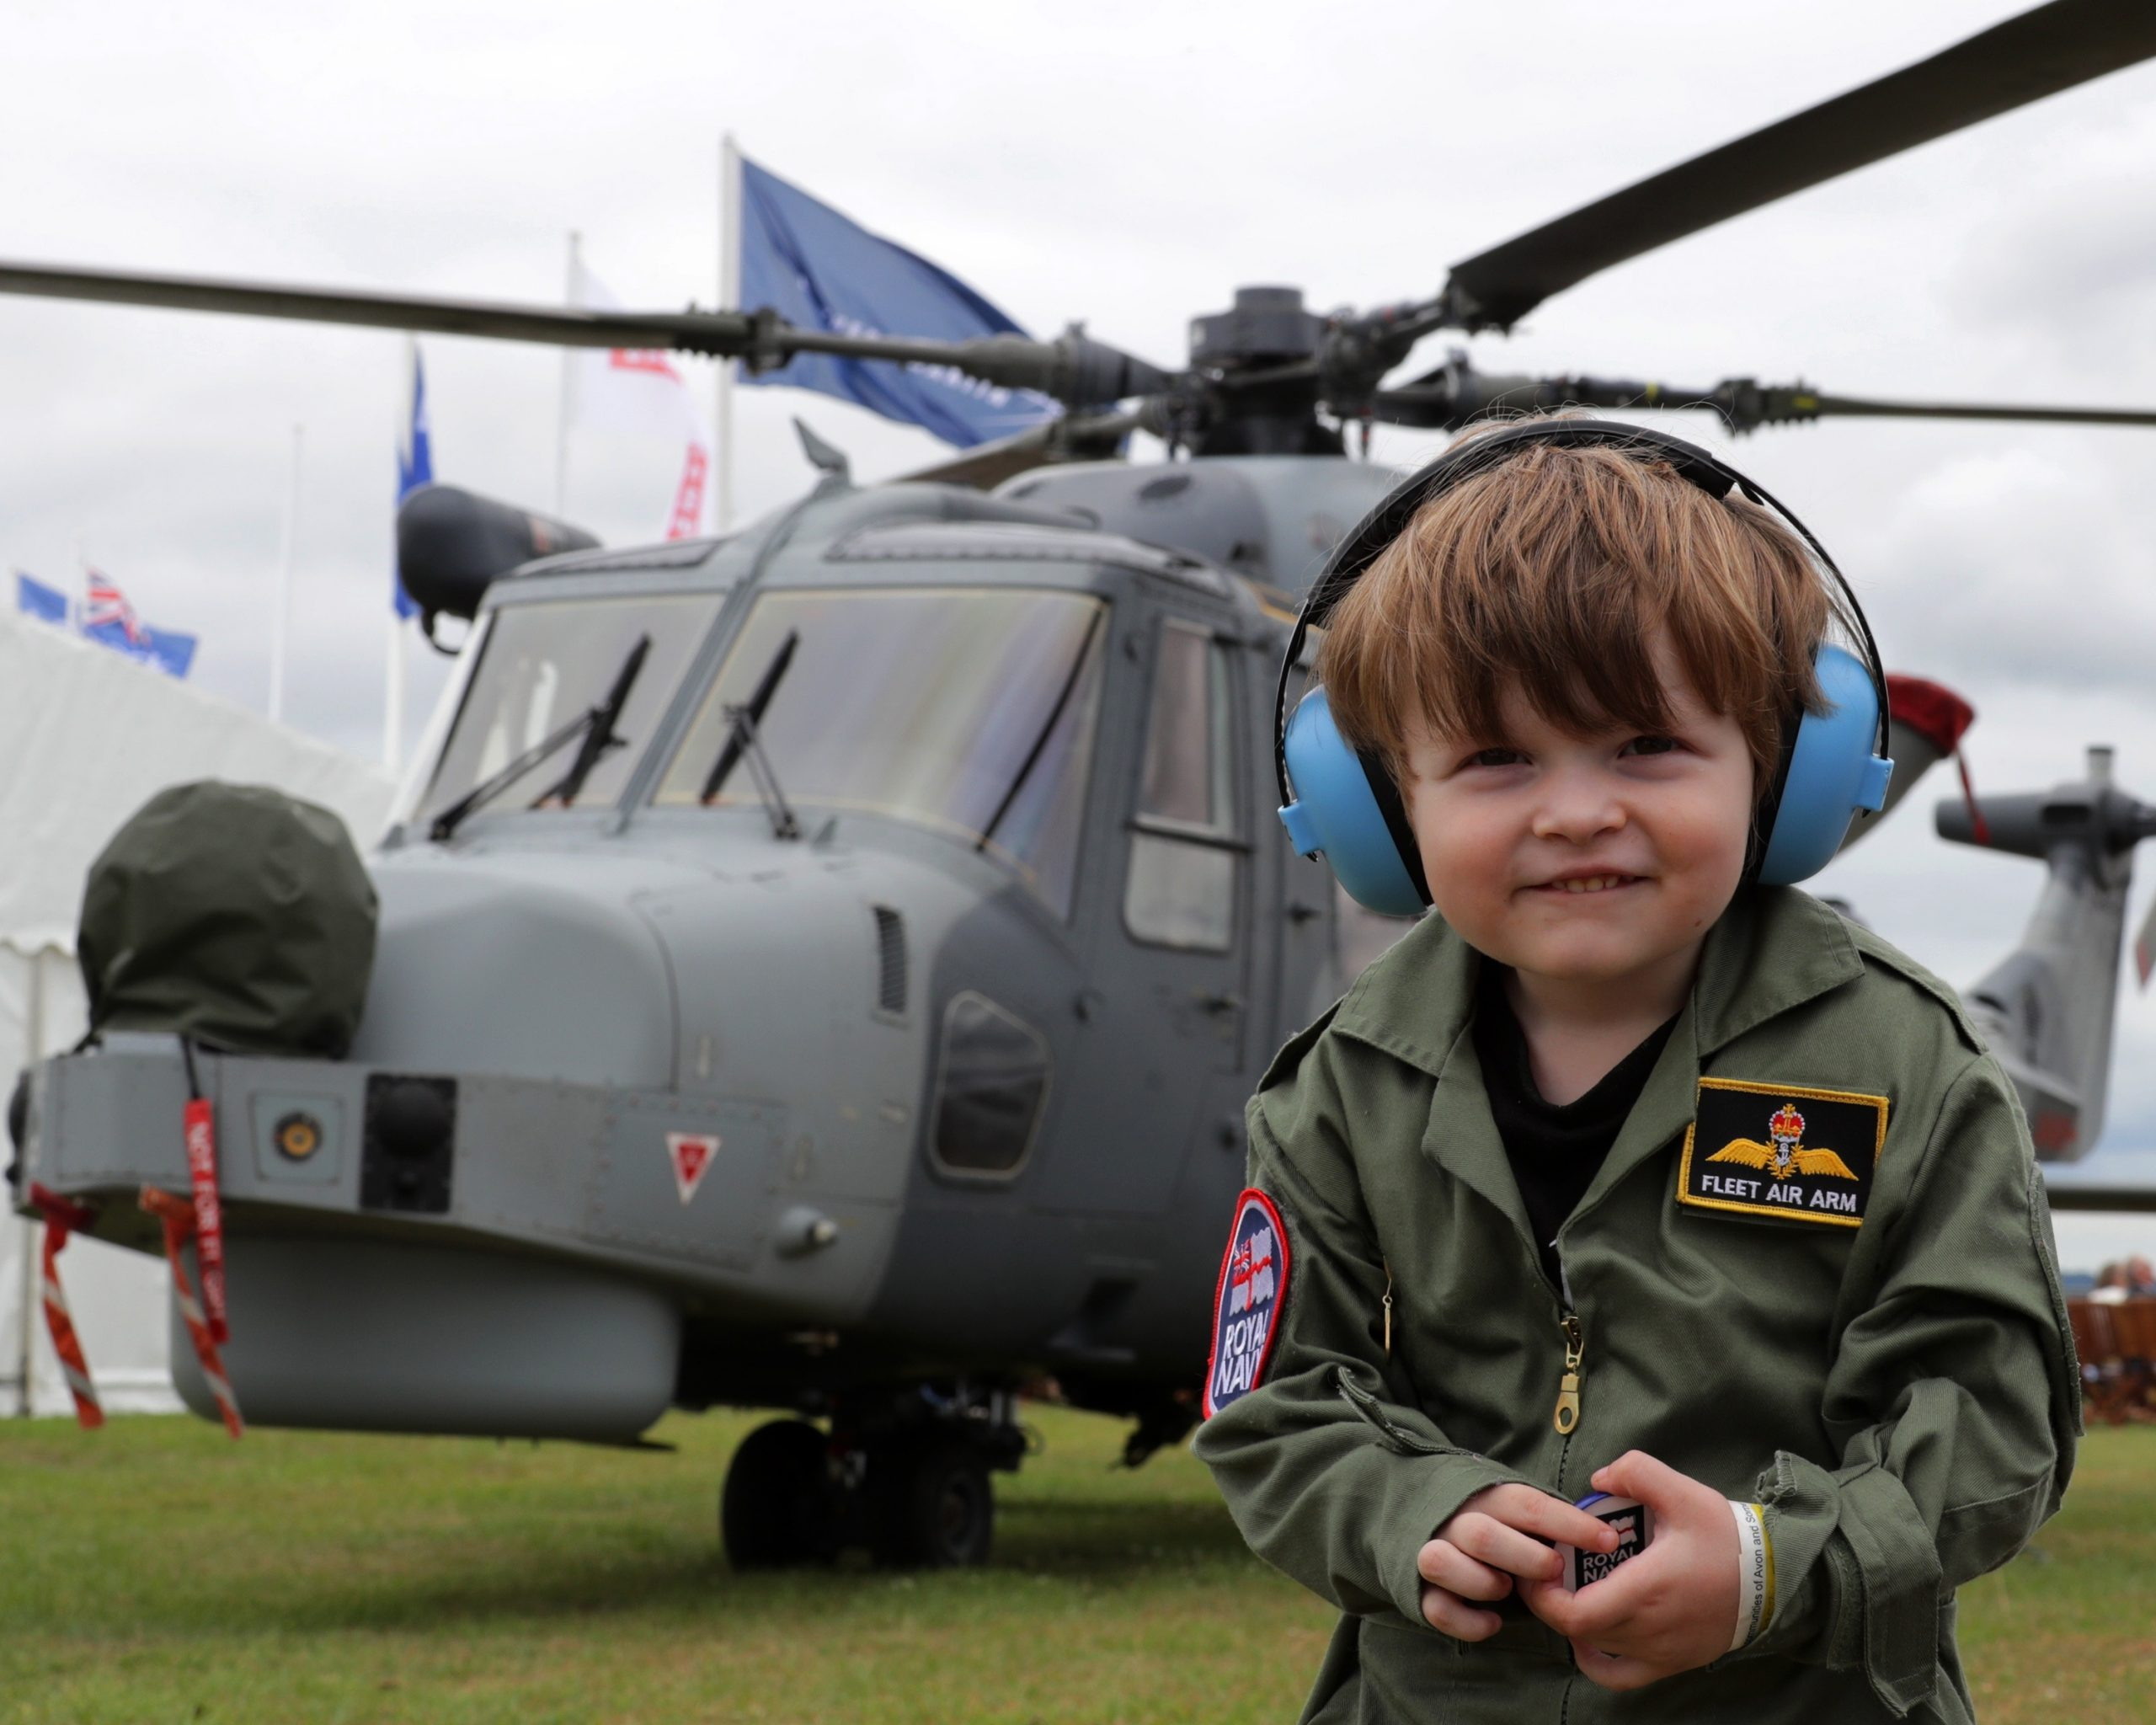 Boy in fleet air arm overalls and earmuffs with helicopter behind him.